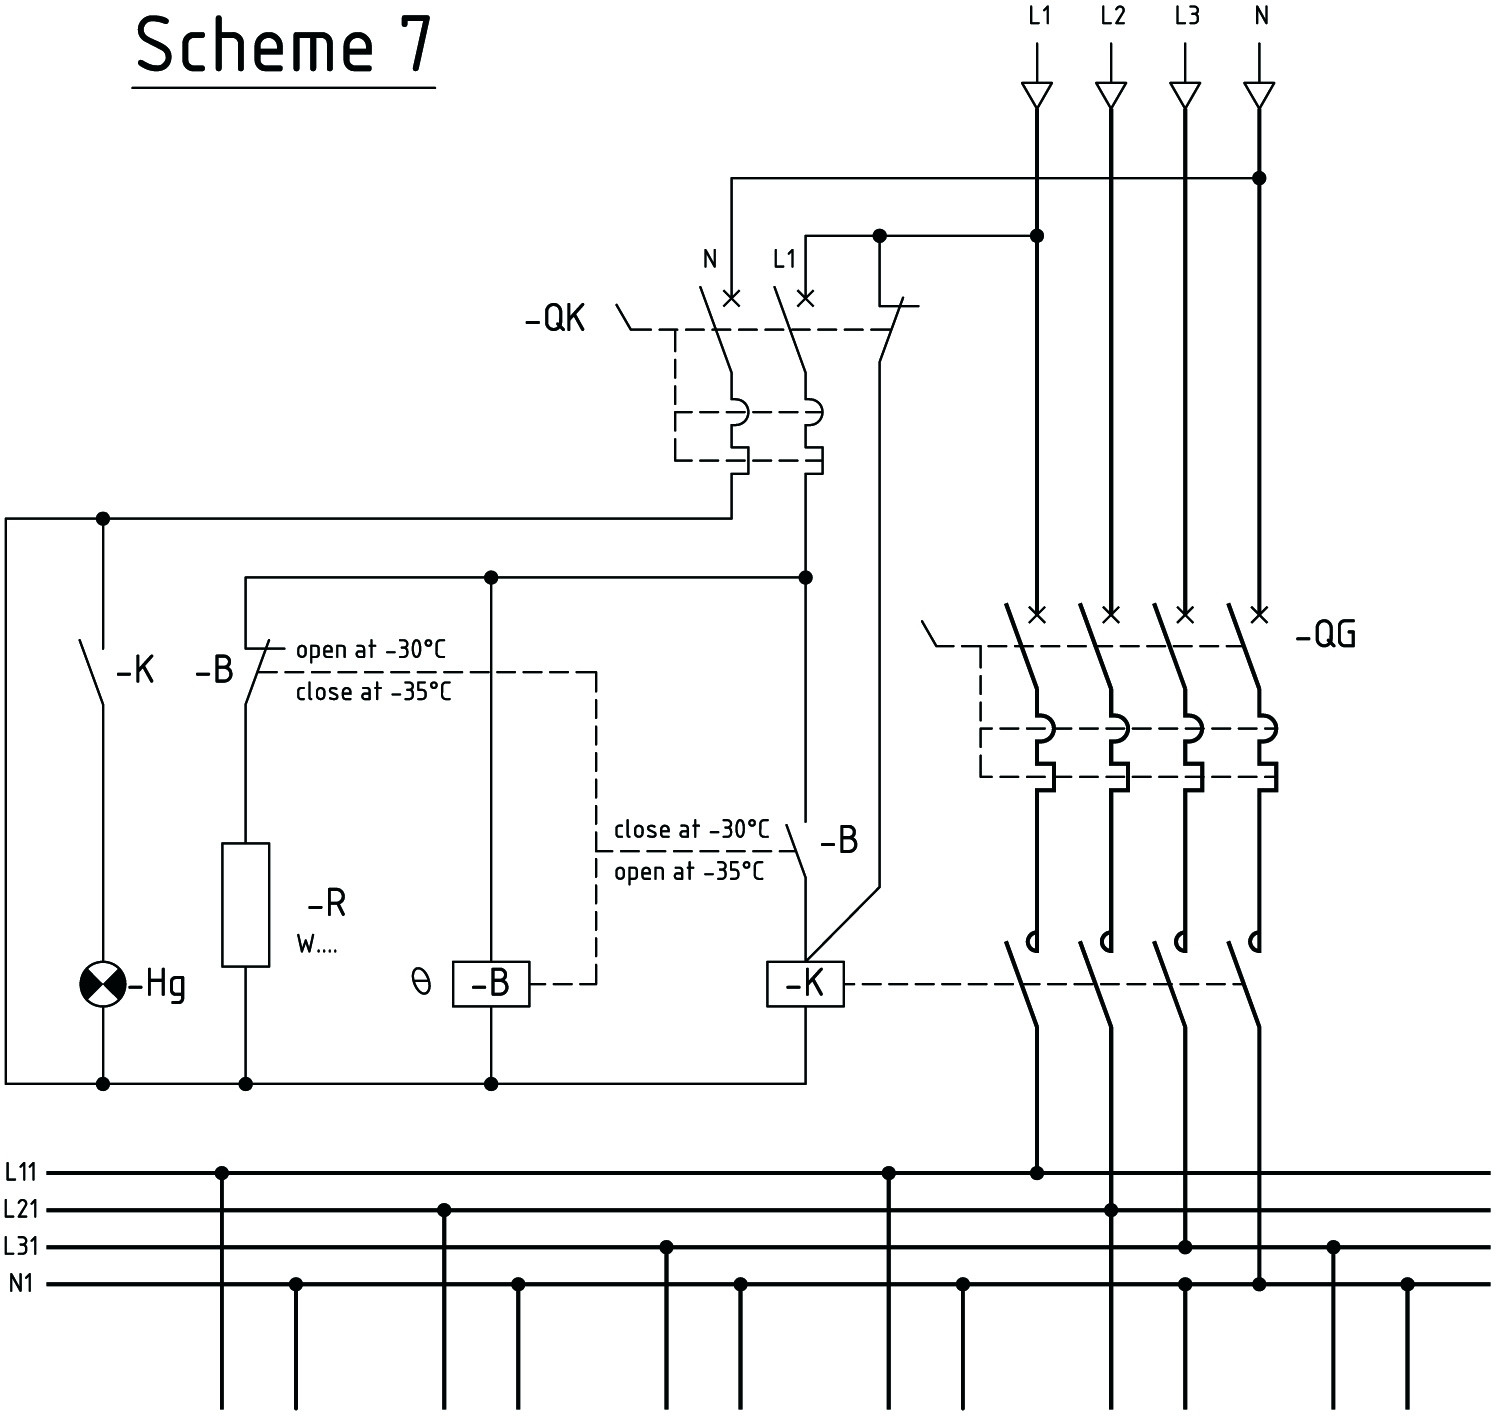 hight resolution of 3 pole circuit breaker wiring diagram wiring diagram earth leakage relay valid 3 pole circuit